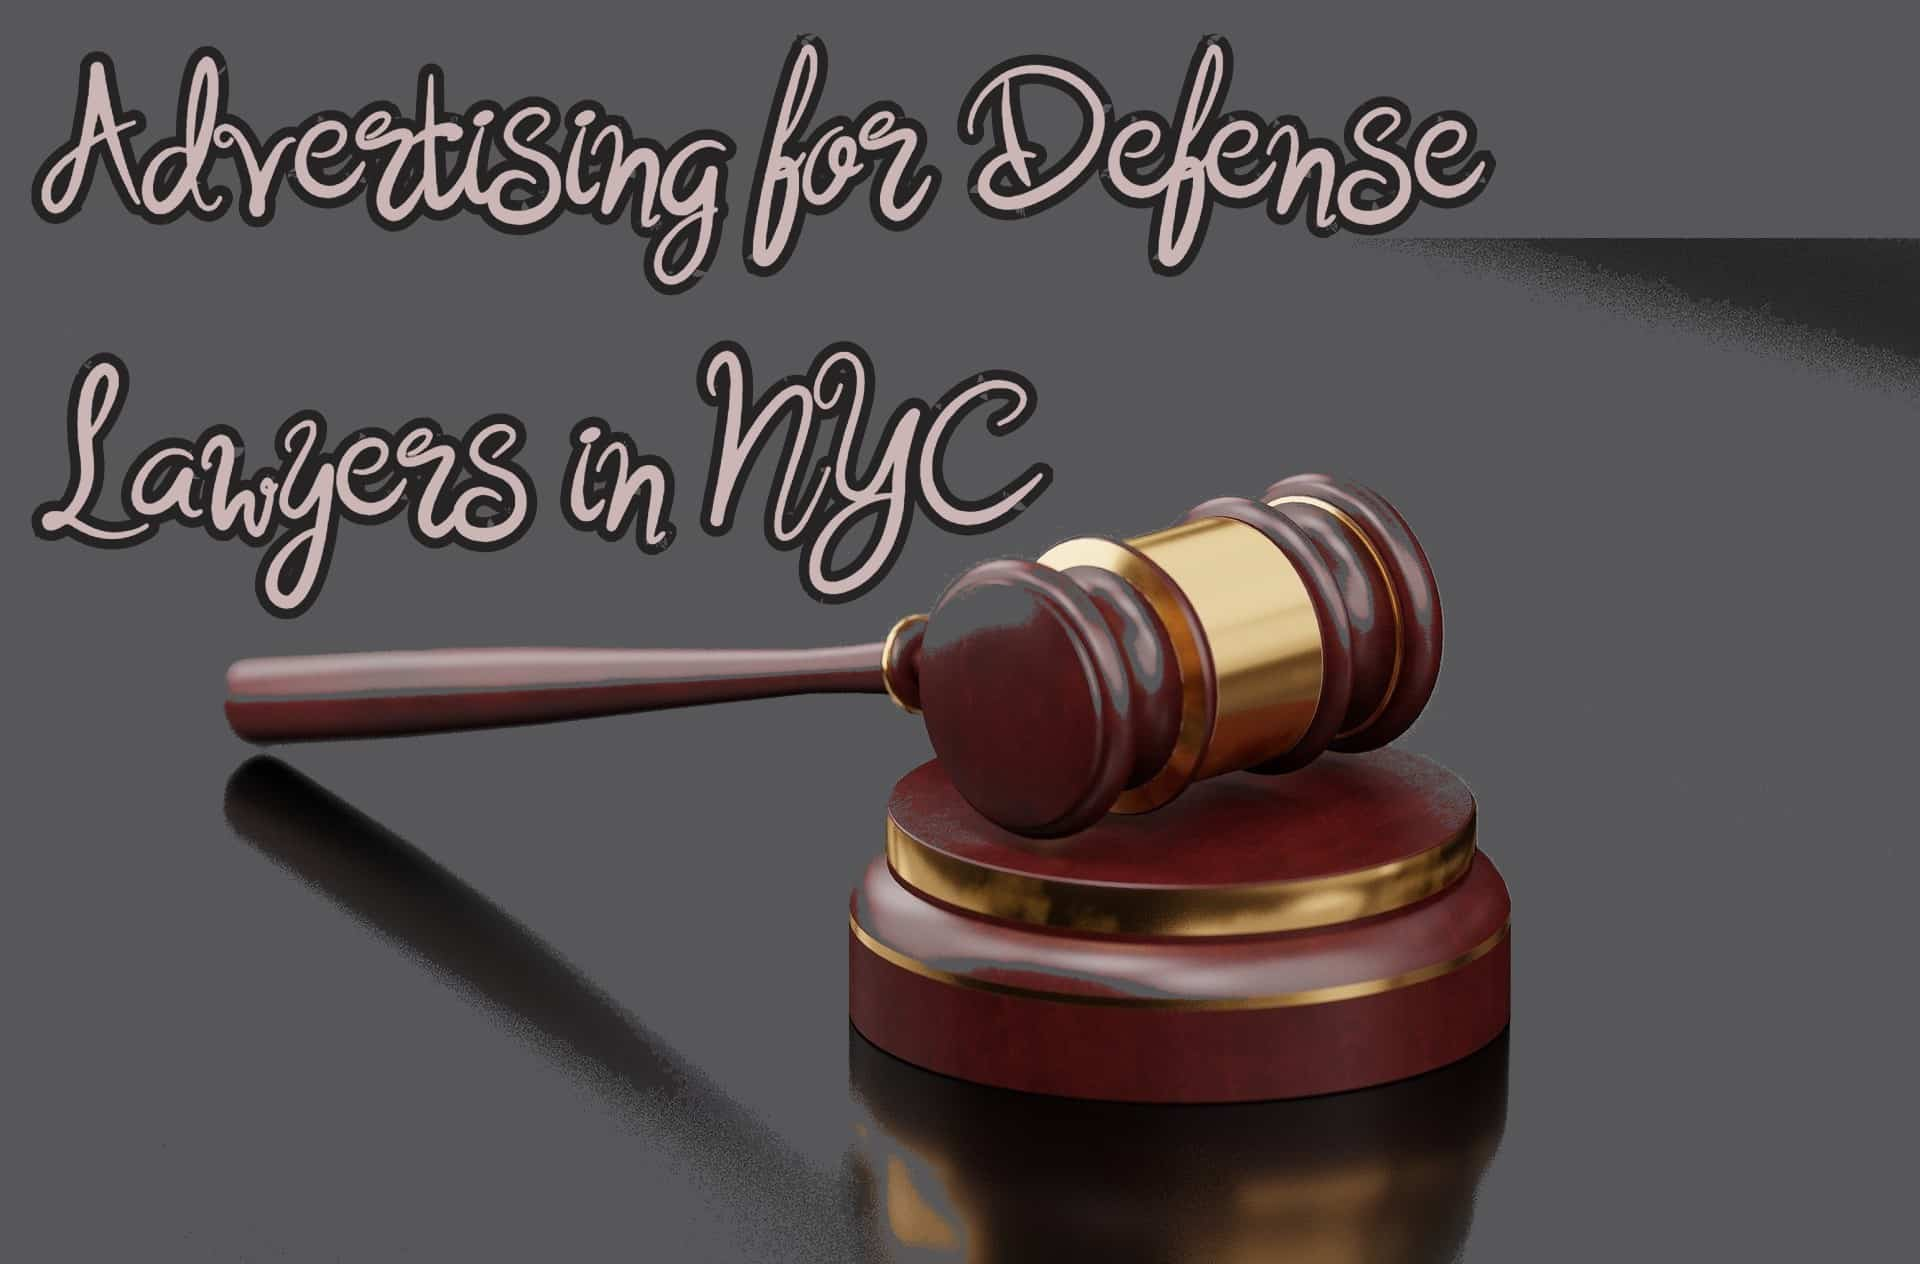 Advertising for defense lawyers in New York nearby